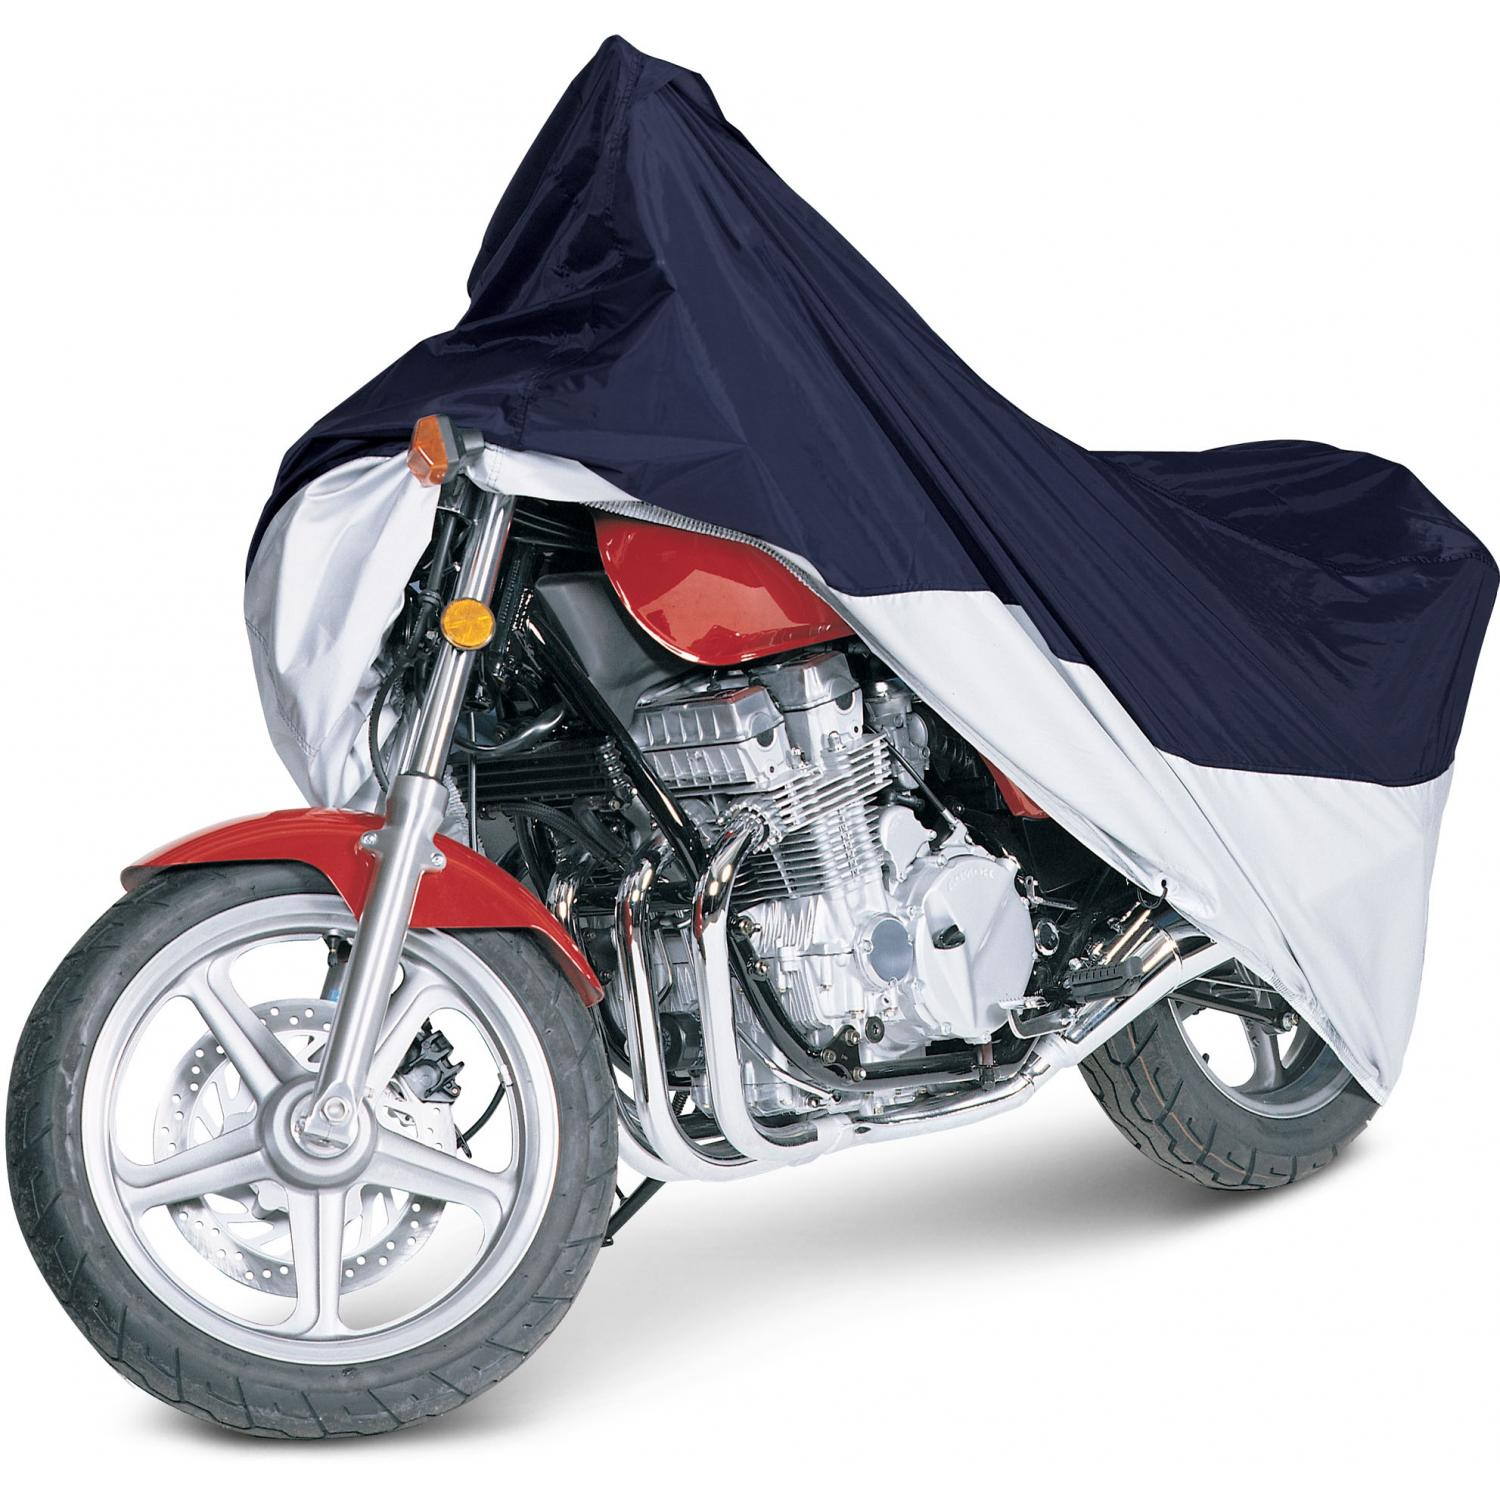 Classic Accessories MotoGear Motorcycle Cover - Blue/Silver - Large